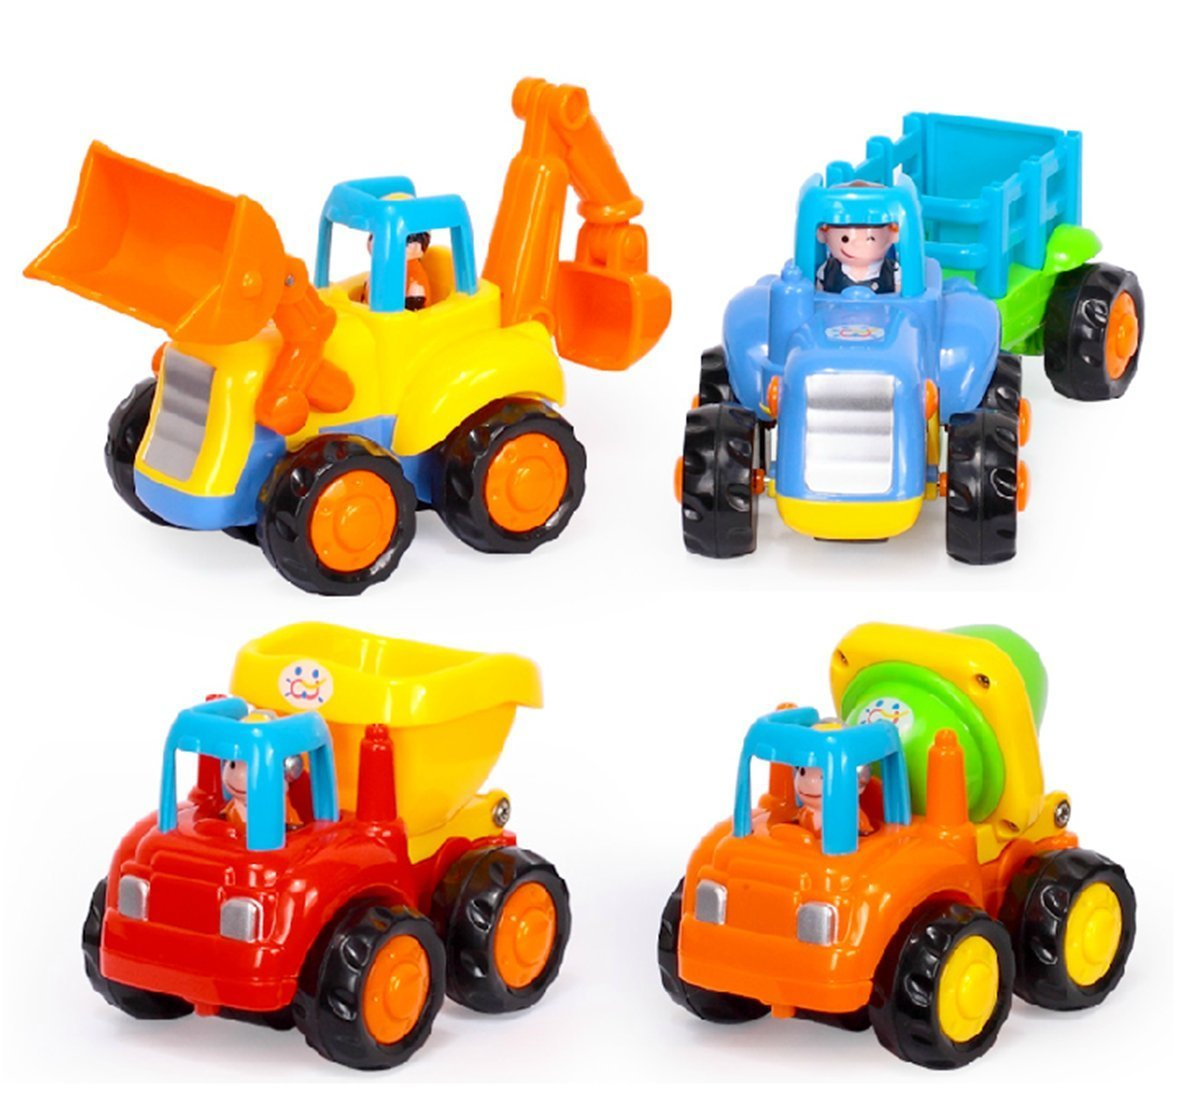 Fu T Powered Cars Push and Go Car Construction Vehicles Toys,Dump Truck, Cement Mixer, Bulldozer, Tractor, Back Cartoon Play for 1 2 3 Years Old Boys Toddlers Kids Gift ( Set of 4)